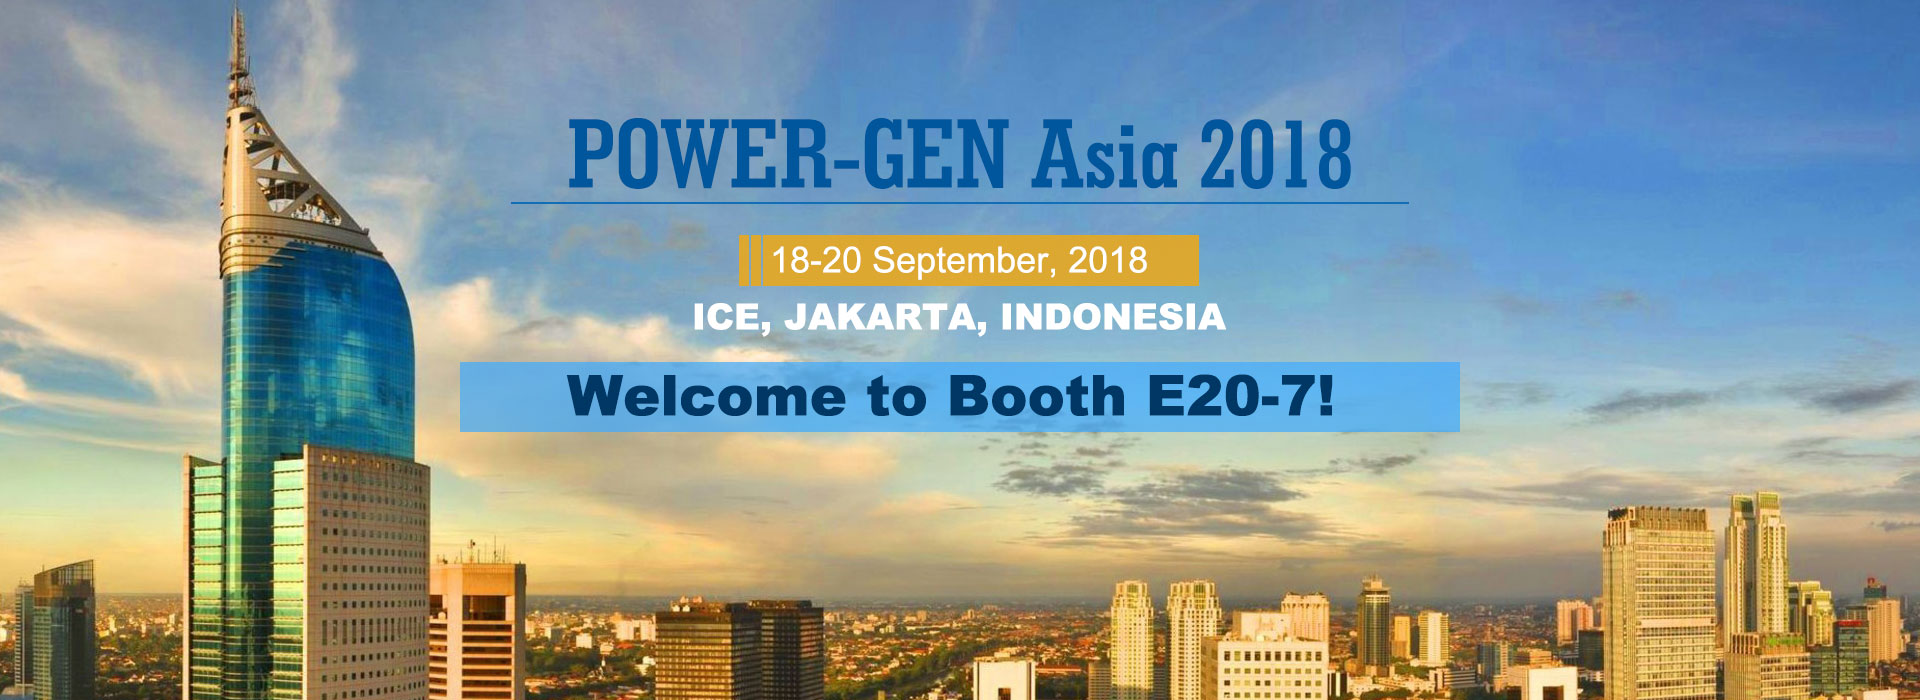 POWER-GEN Asia 2018